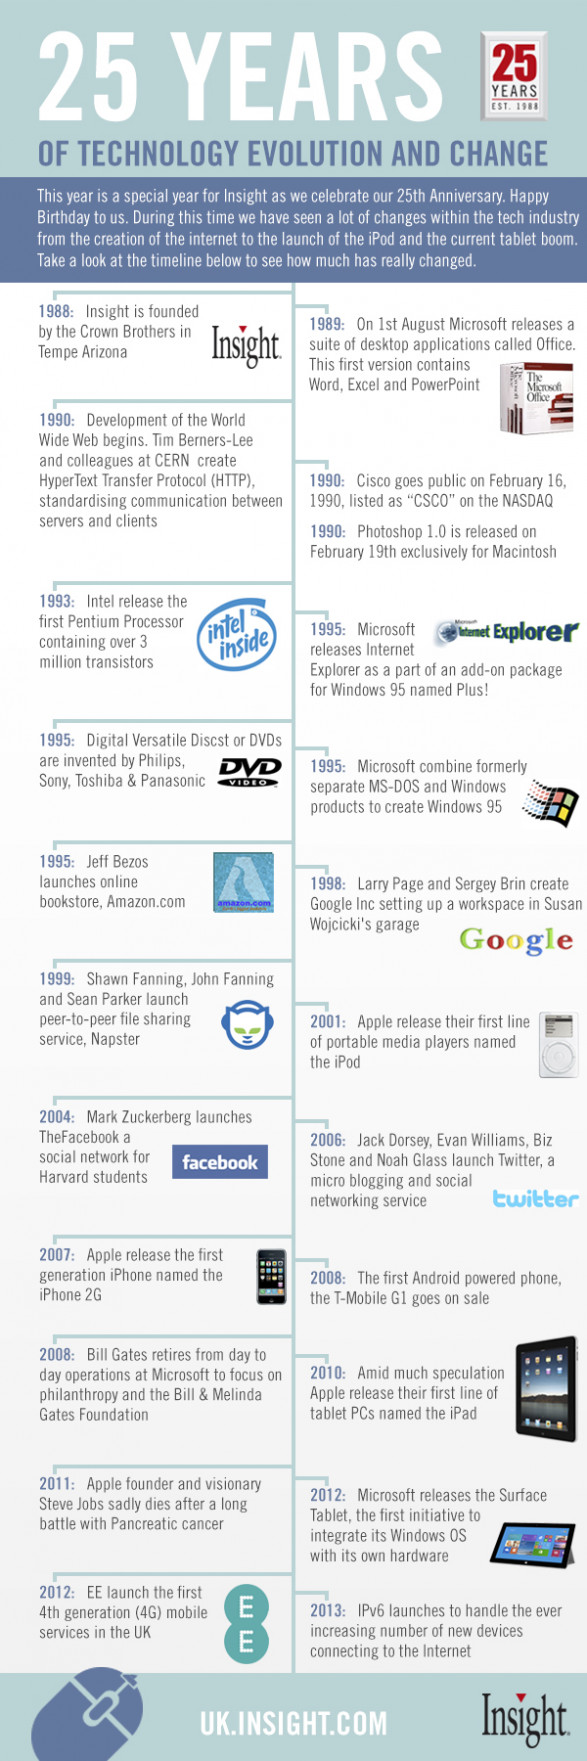 25 years of technology evolution and change